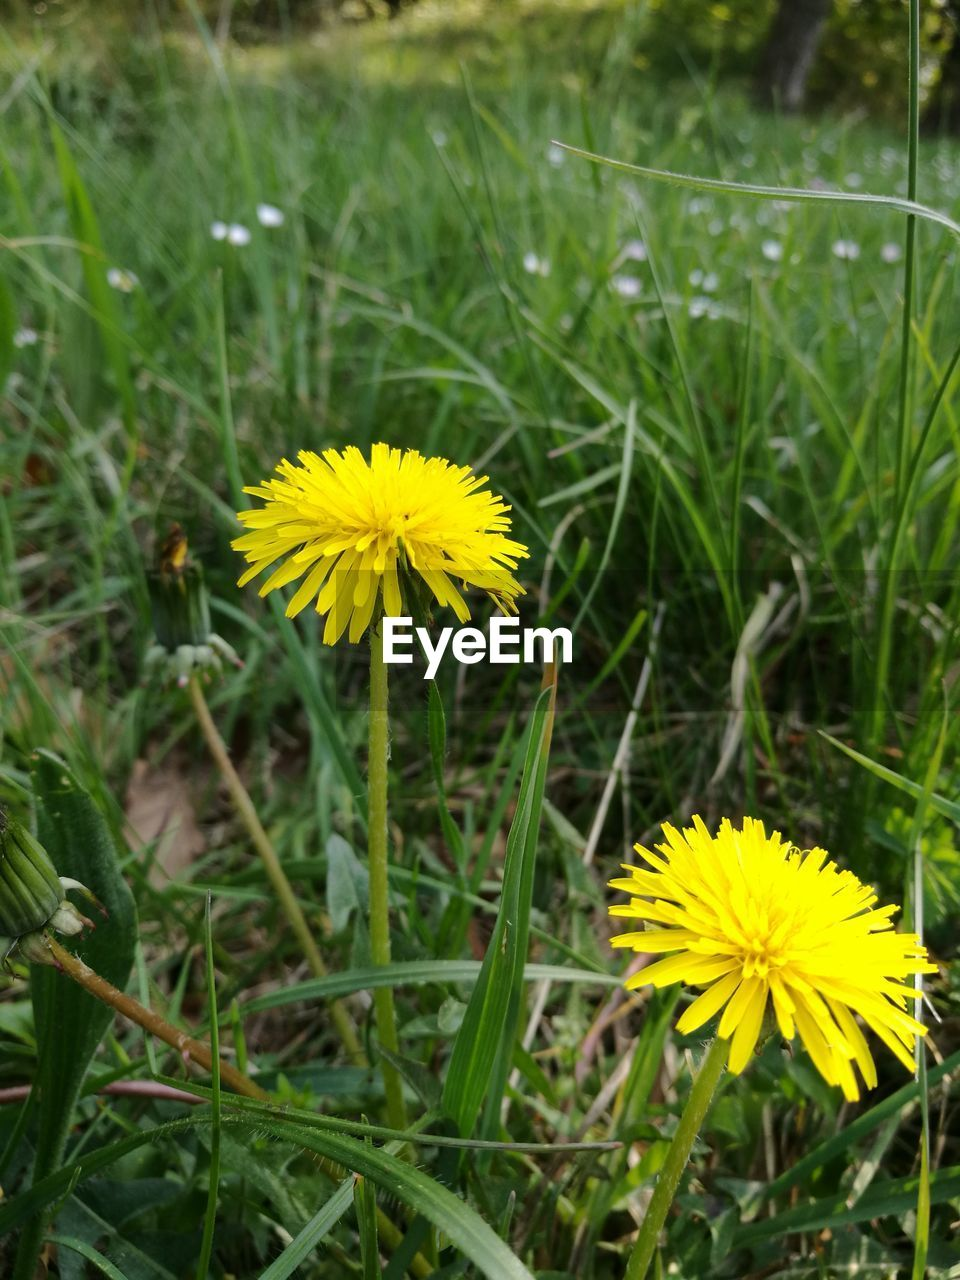 flower, yellow, growth, field, beauty in nature, fragility, petal, nature, freshness, flower head, plant, blooming, no people, outdoors, green color, close-up, grass, day, springtime, crocus